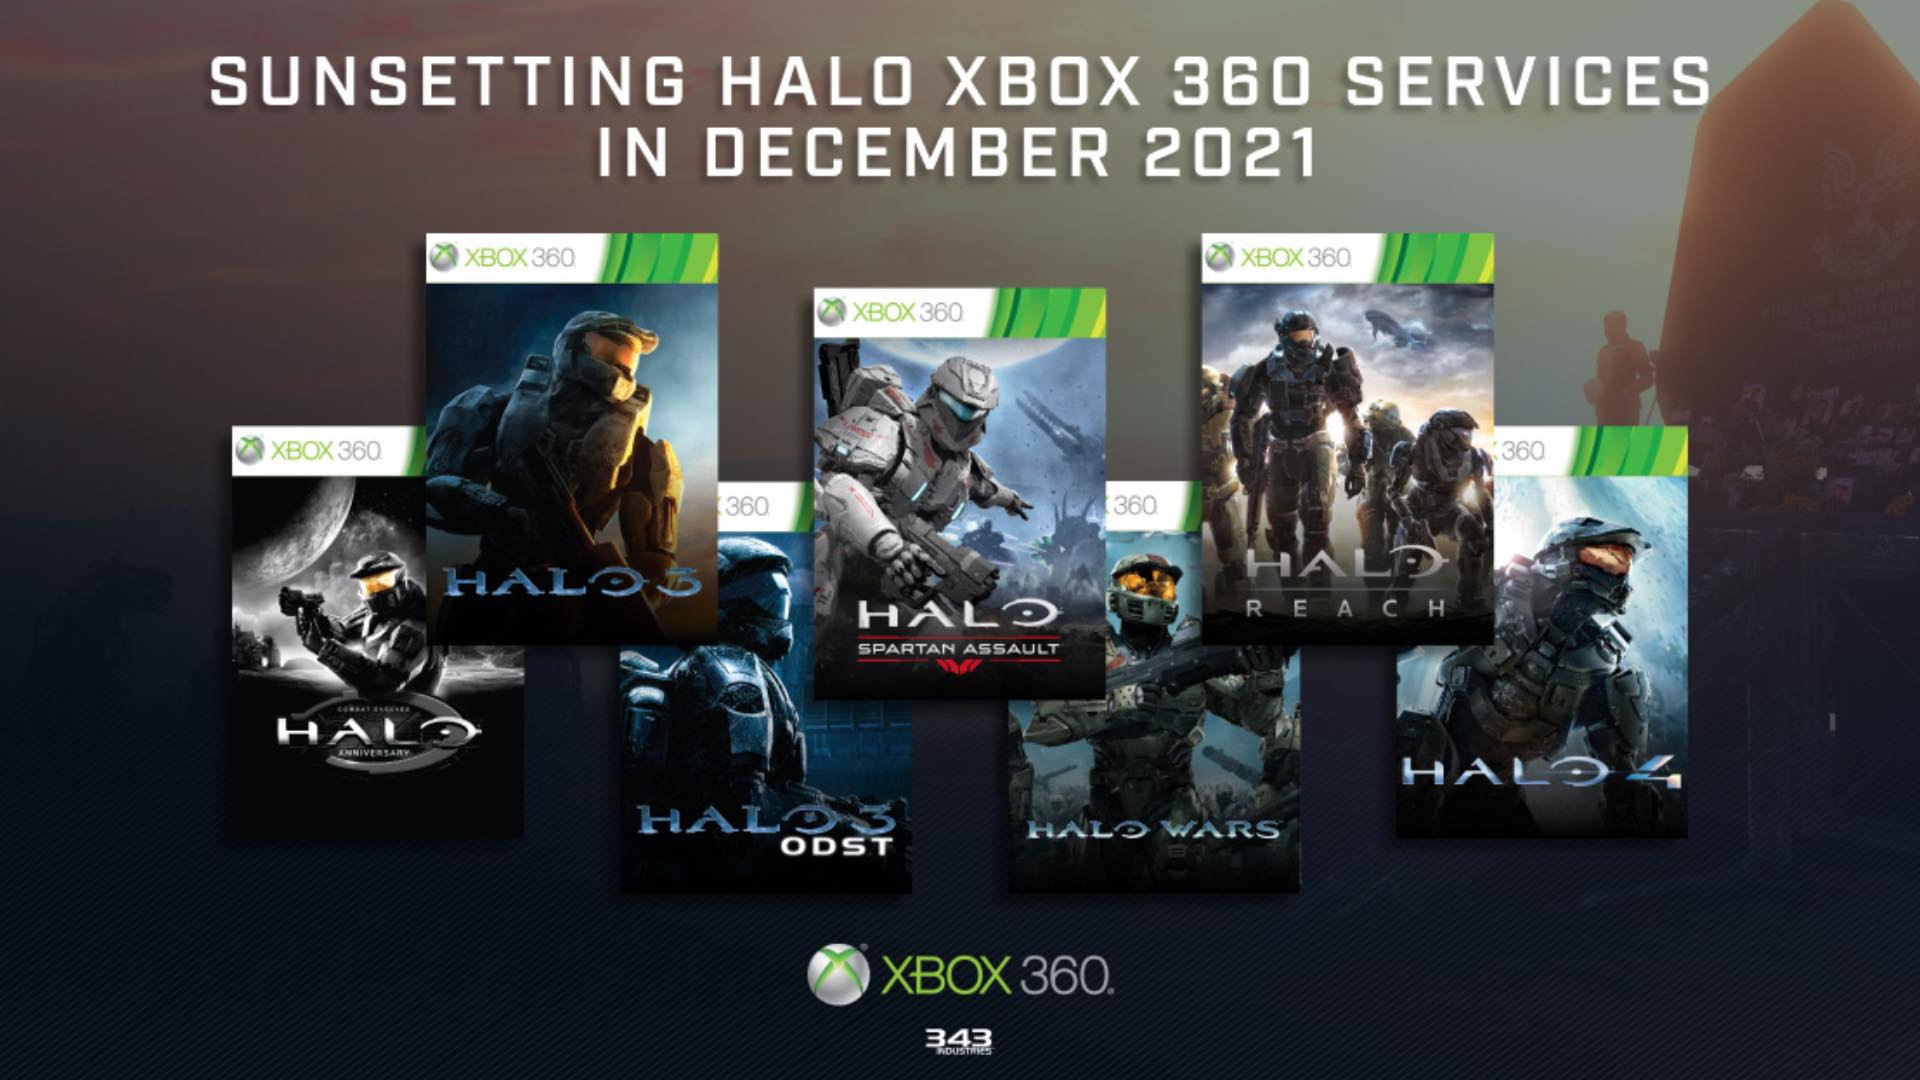 Halo's Xbox 360 Game Services Sunsets In 2021